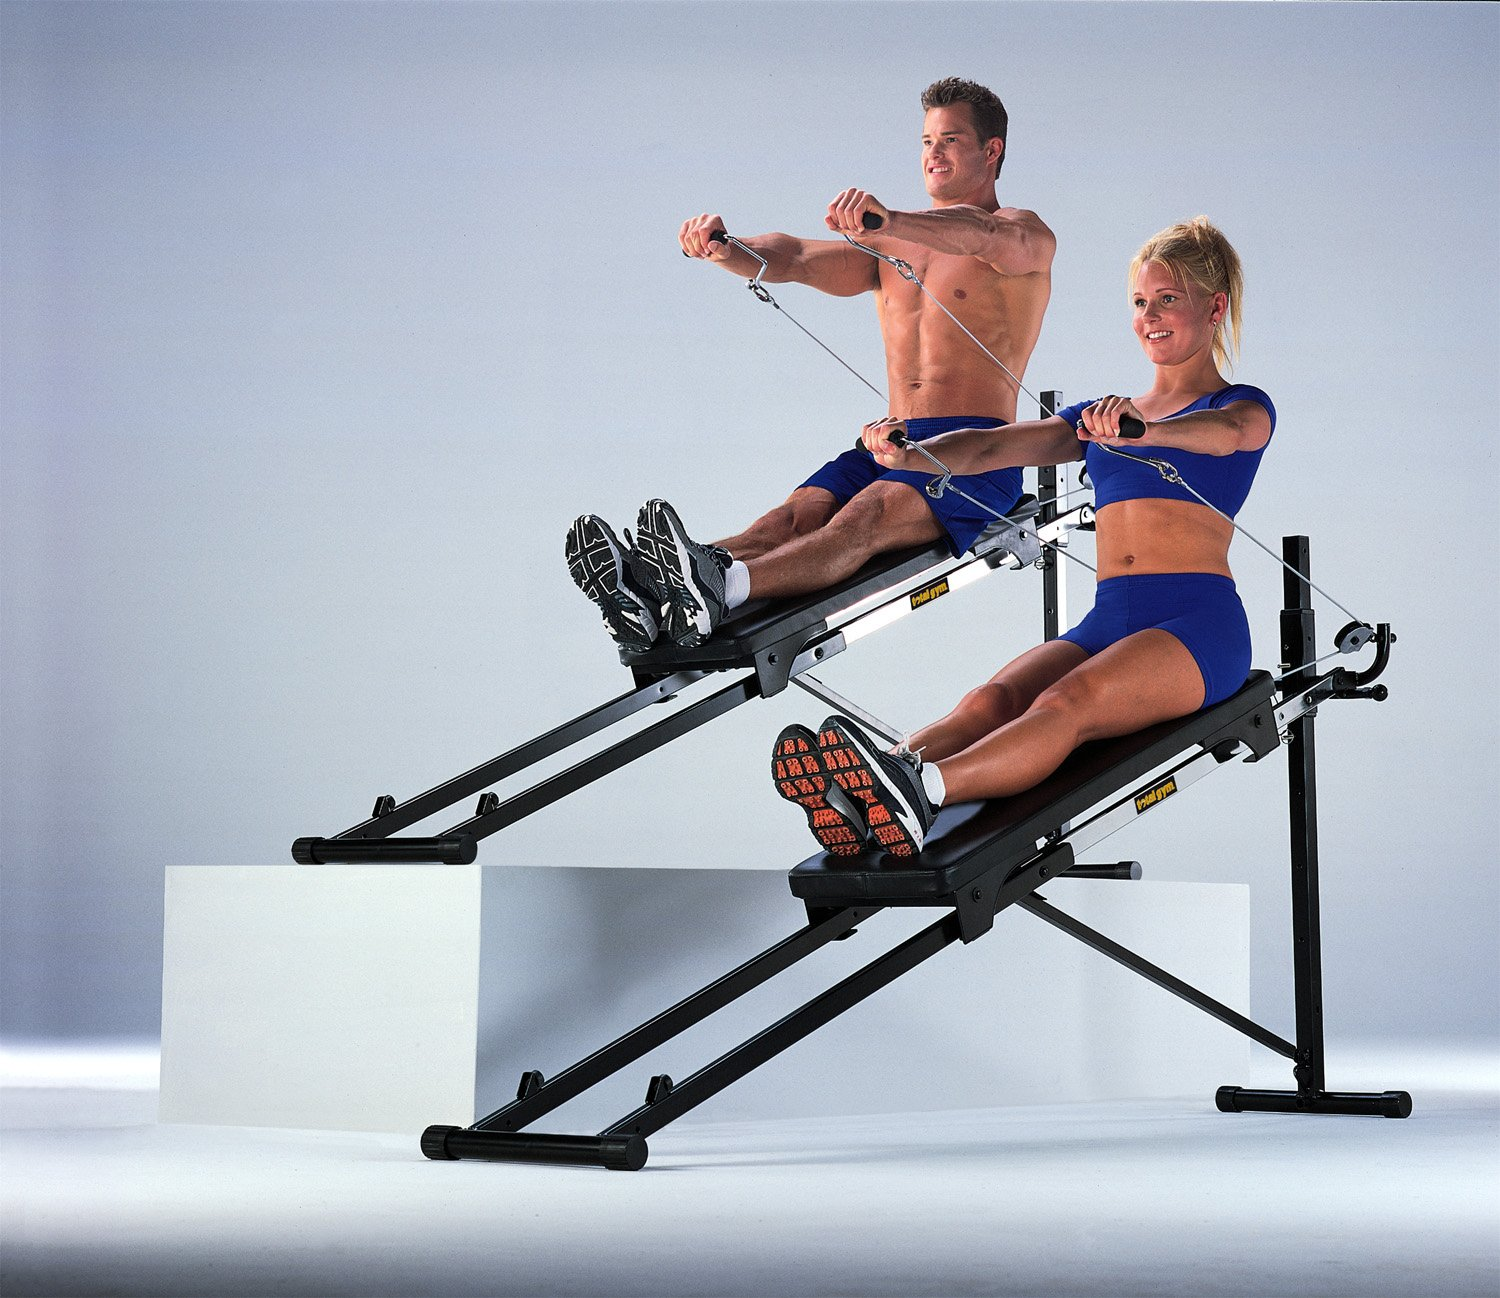 Total gym 1100 review smart monkey fitness.